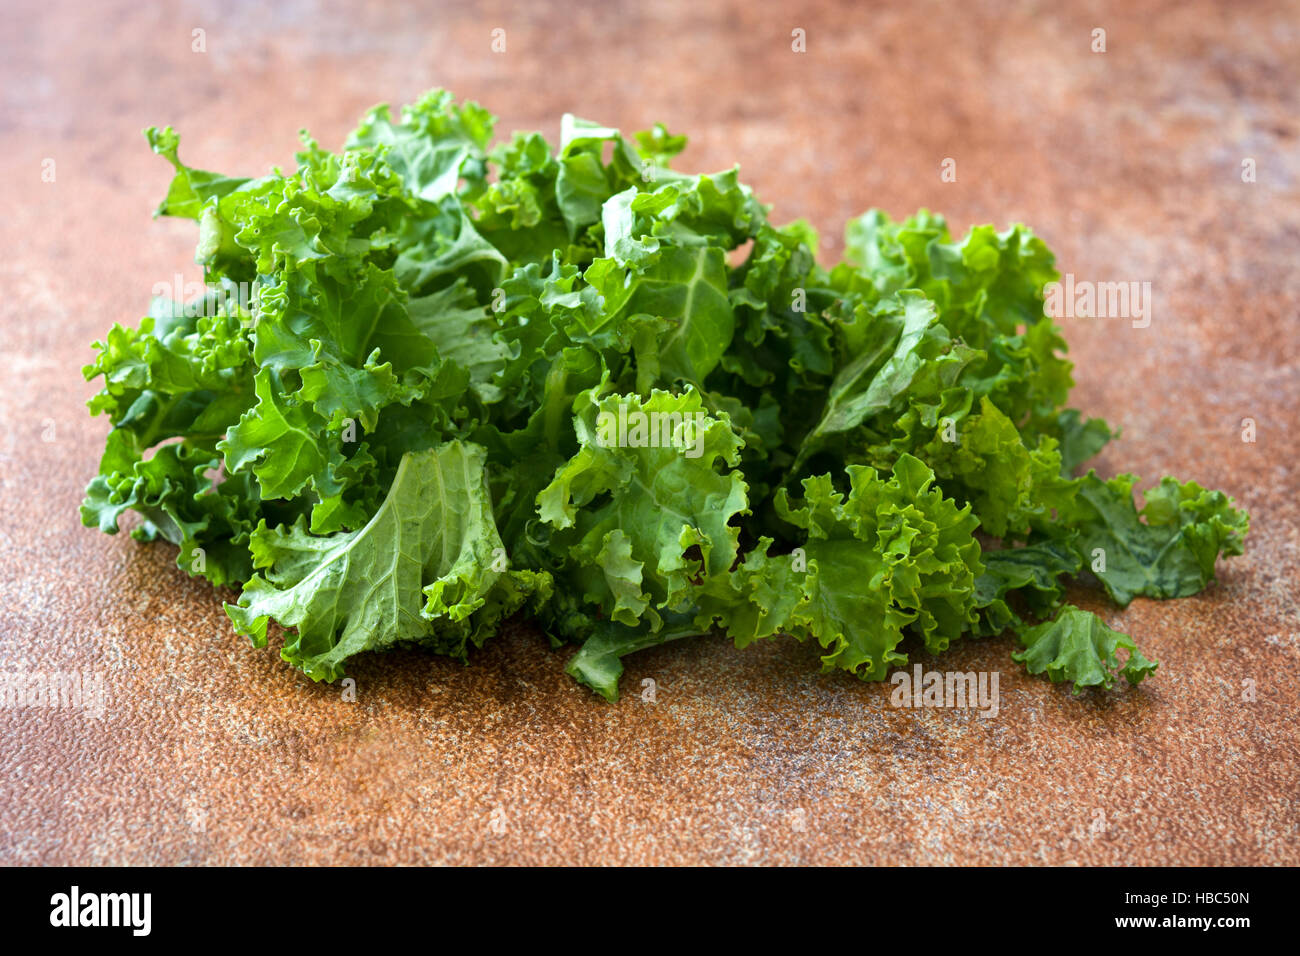 Fresh green superfood kale leaves on rusty background - Stock Image